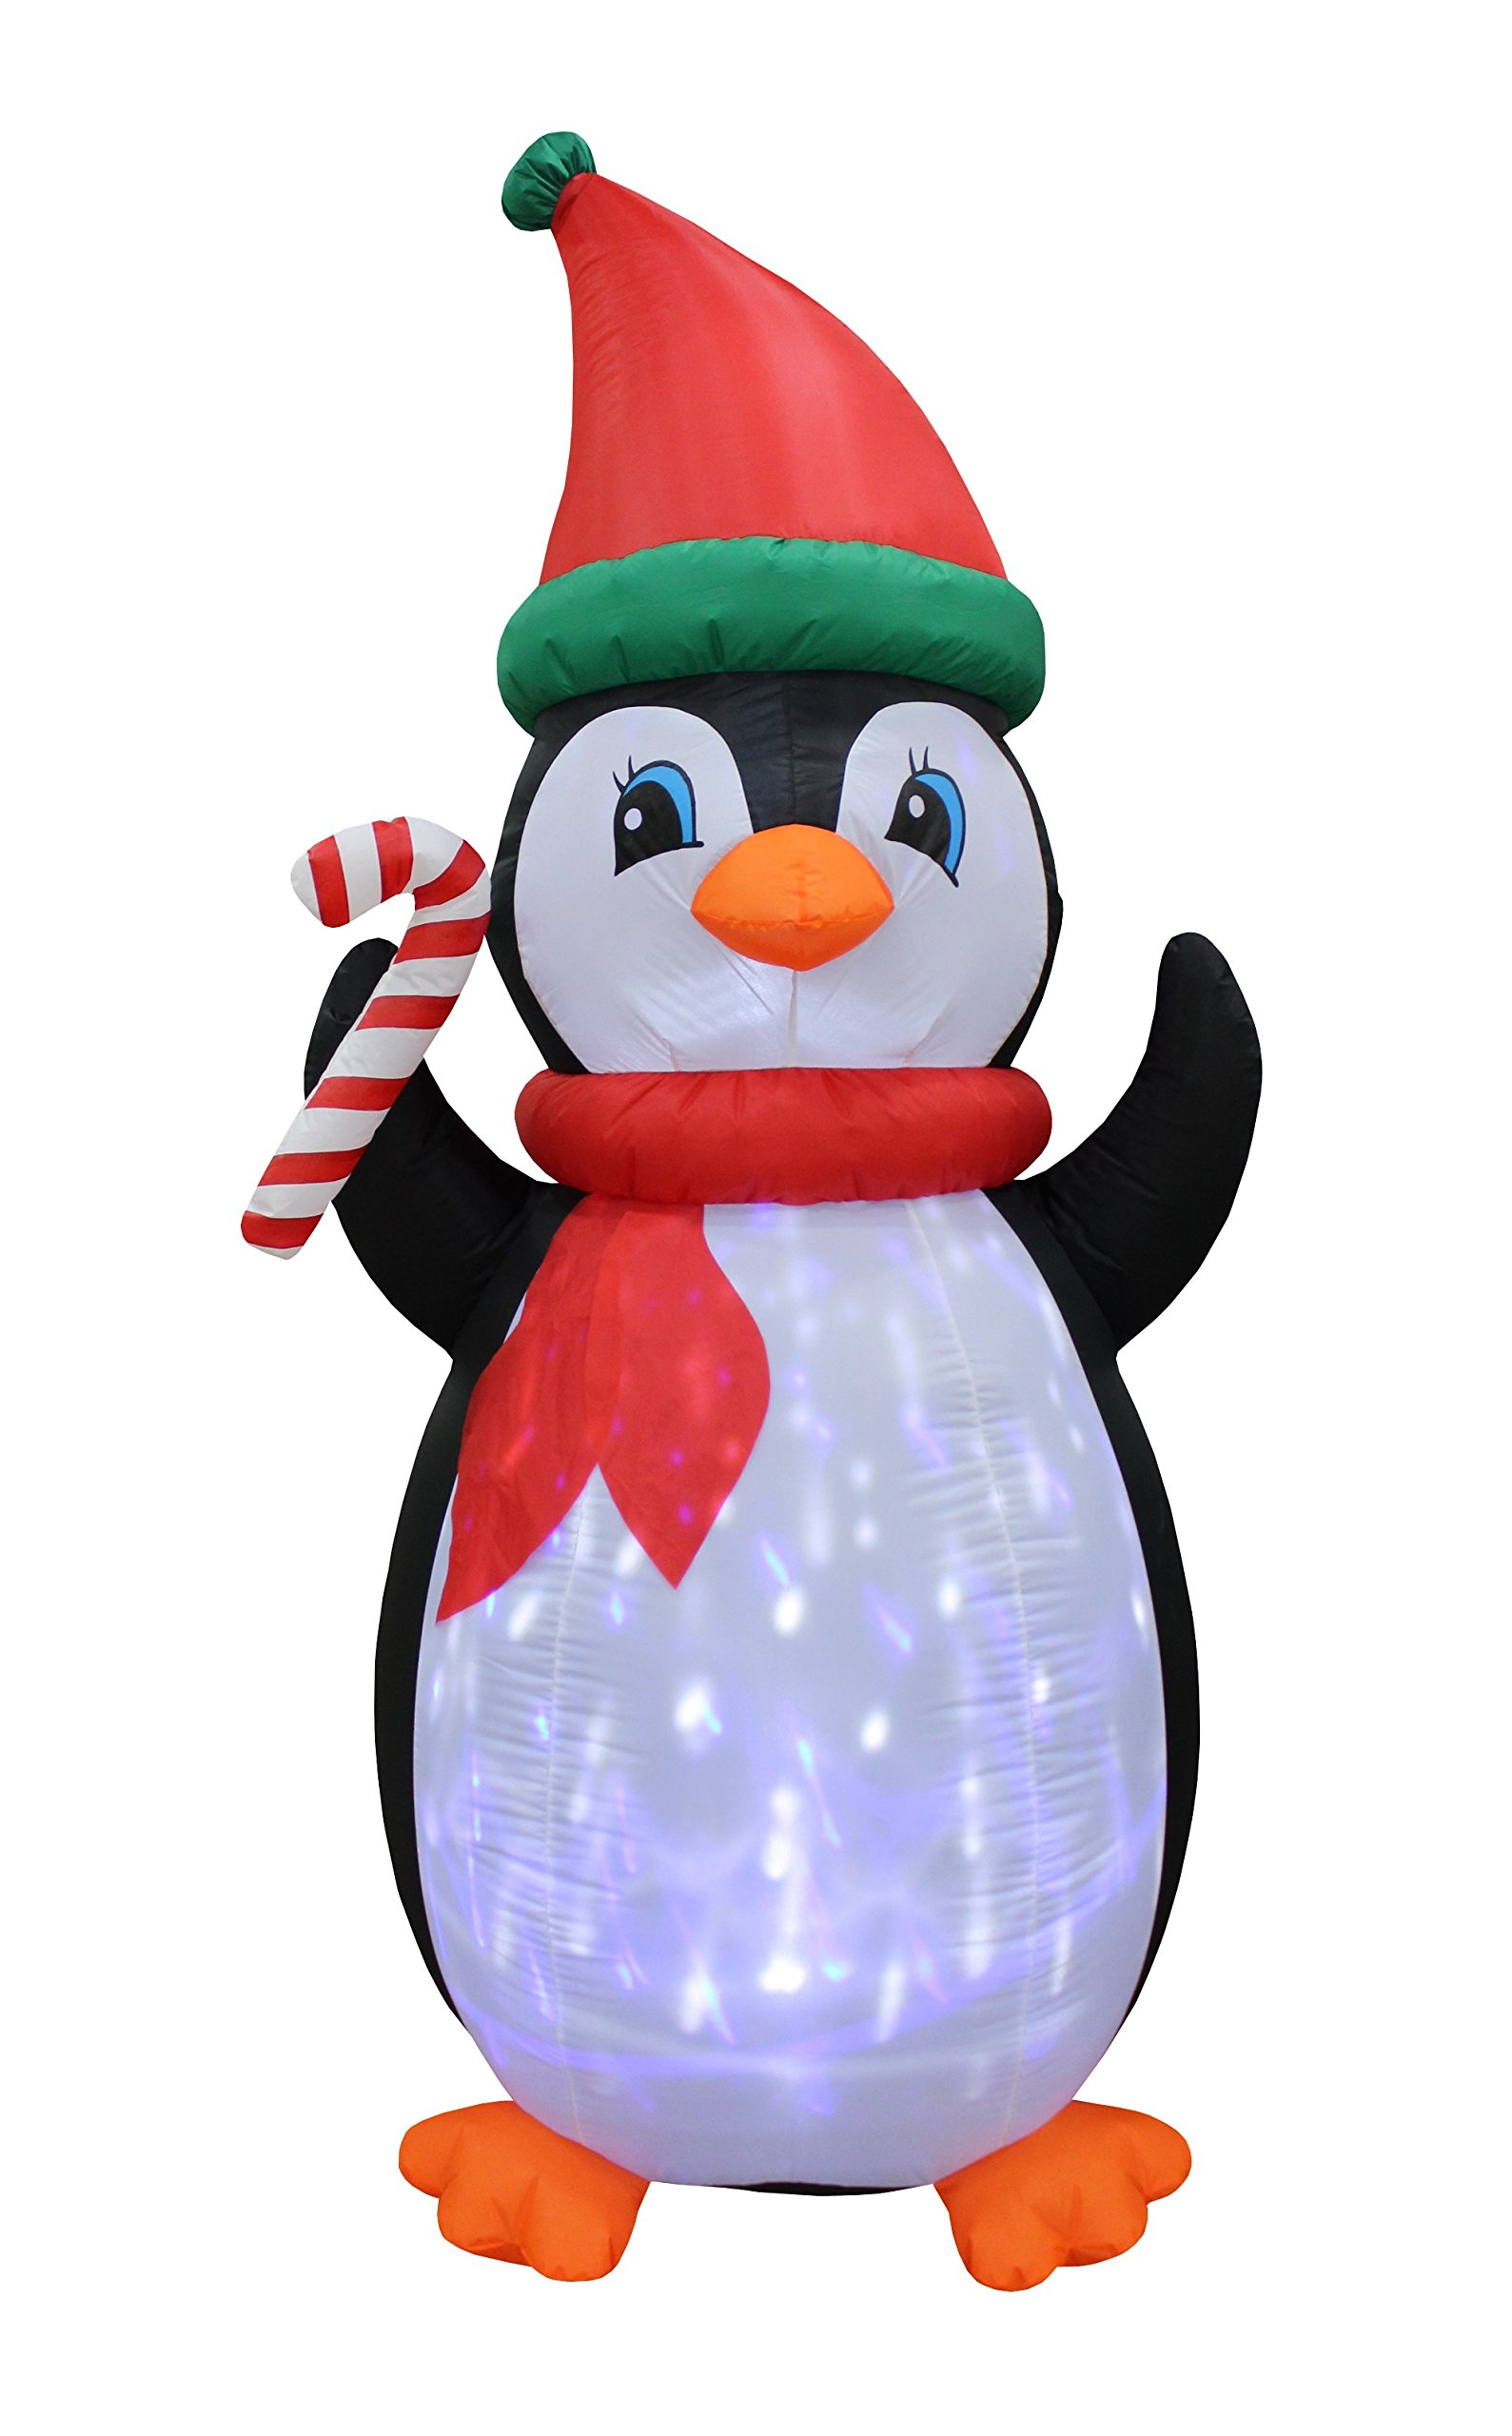 7 Foot Tall Christmas Inflatable Penguins with Twinkle Lights Decor Outdoor Indoor Holiday Decorations, Blow Up LED Lighted Christmas Yard Decor, Giant Lawn Inflatable for Home, Family, Outside